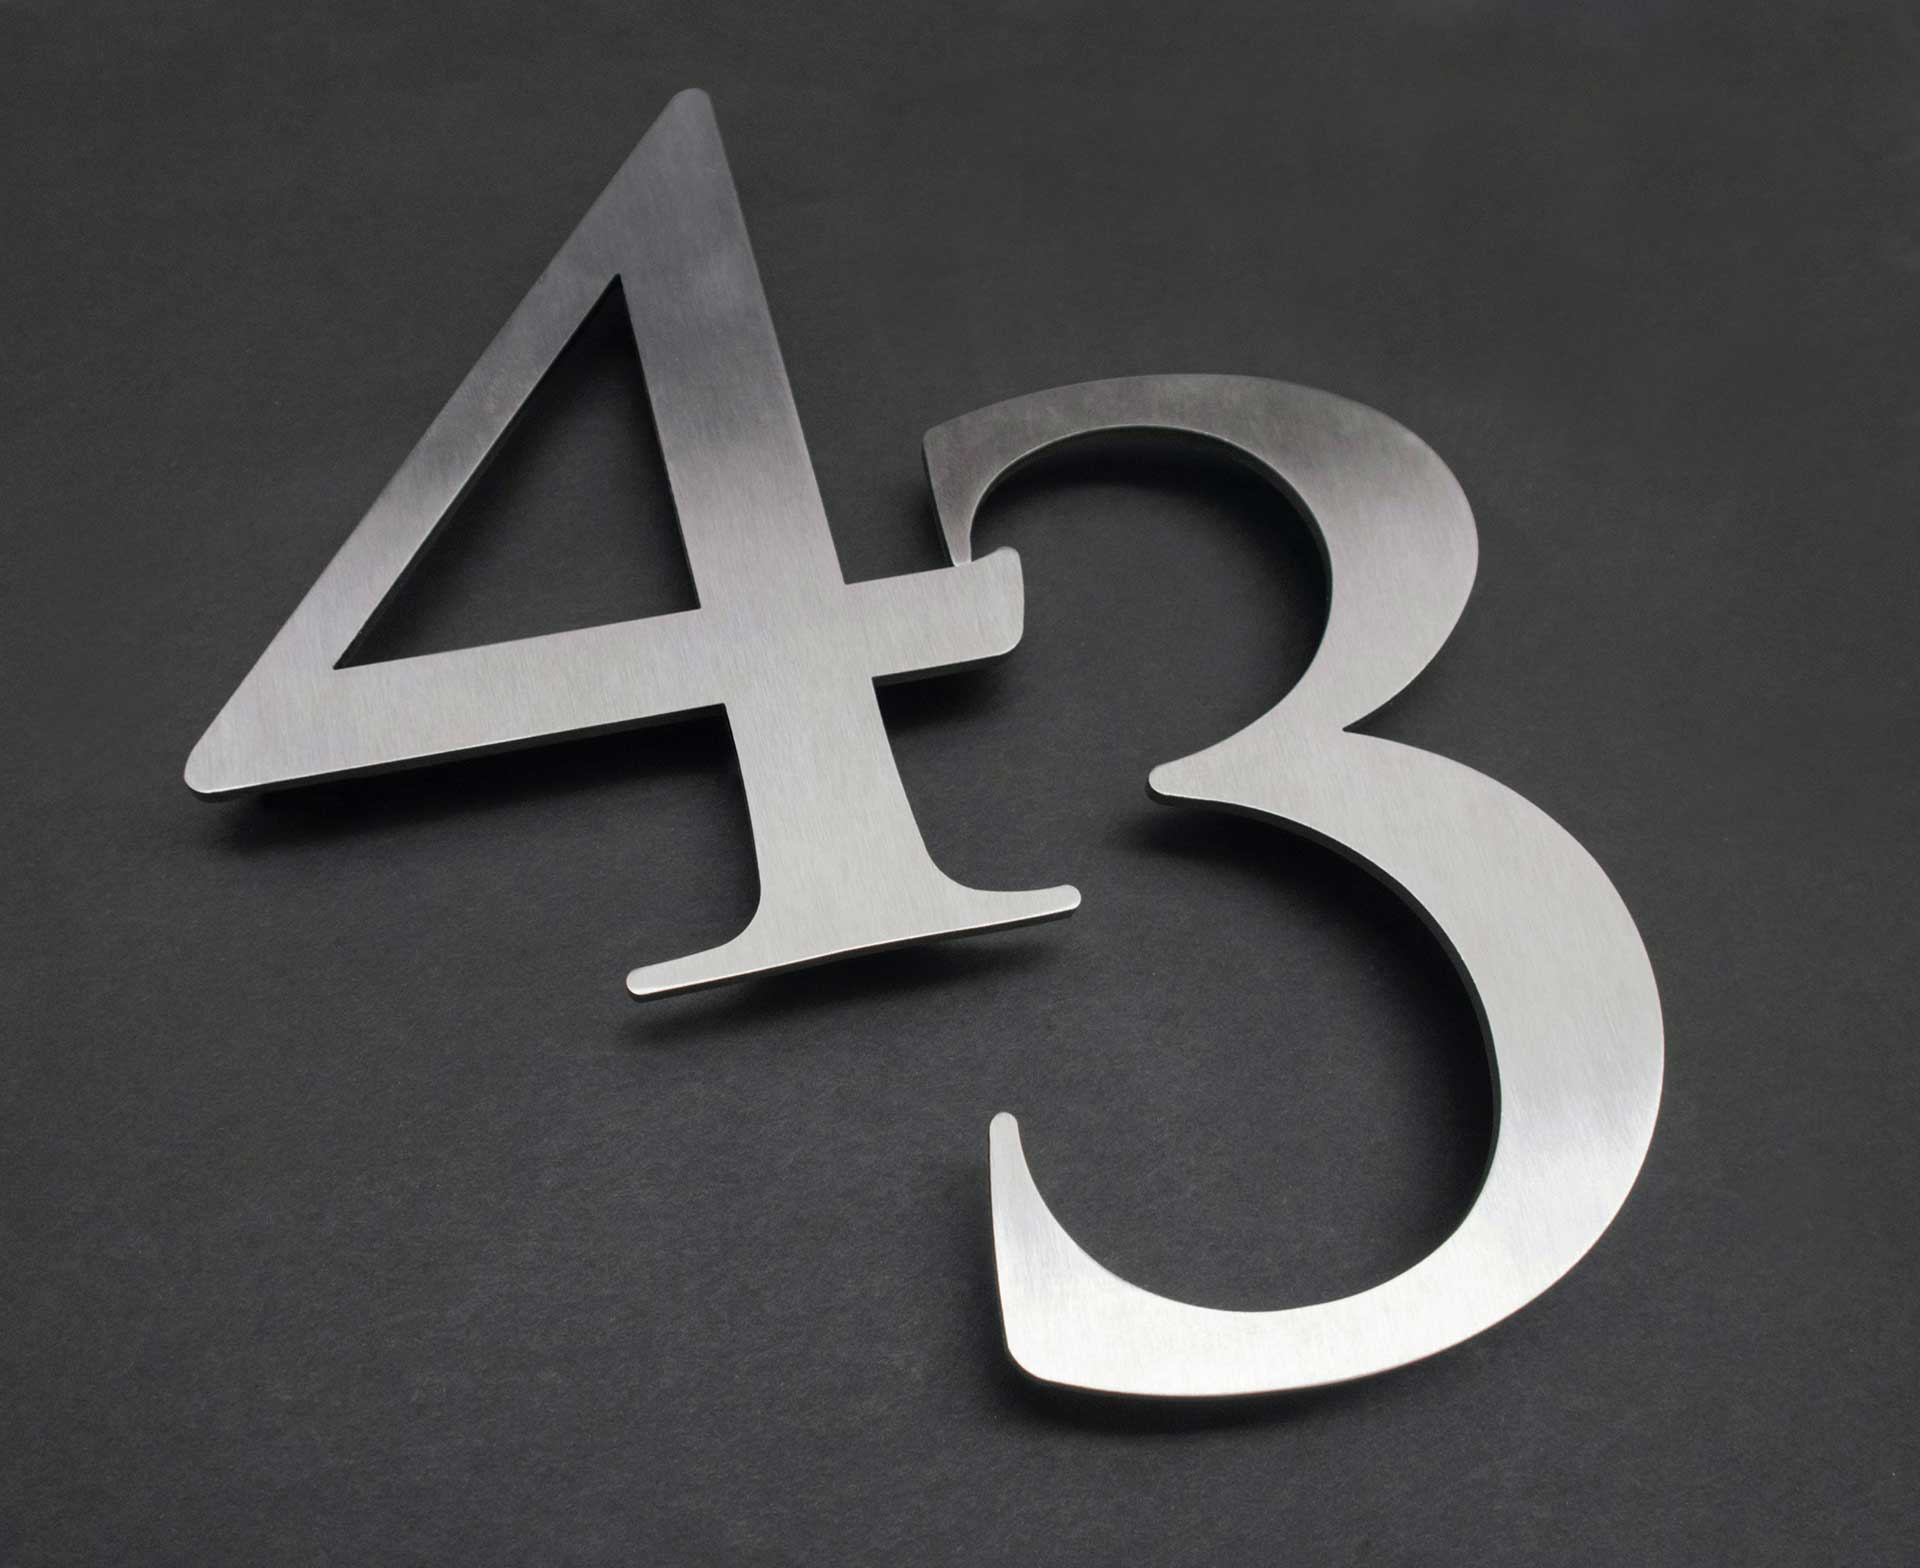 the number 43 laser cut in metal on a grey background